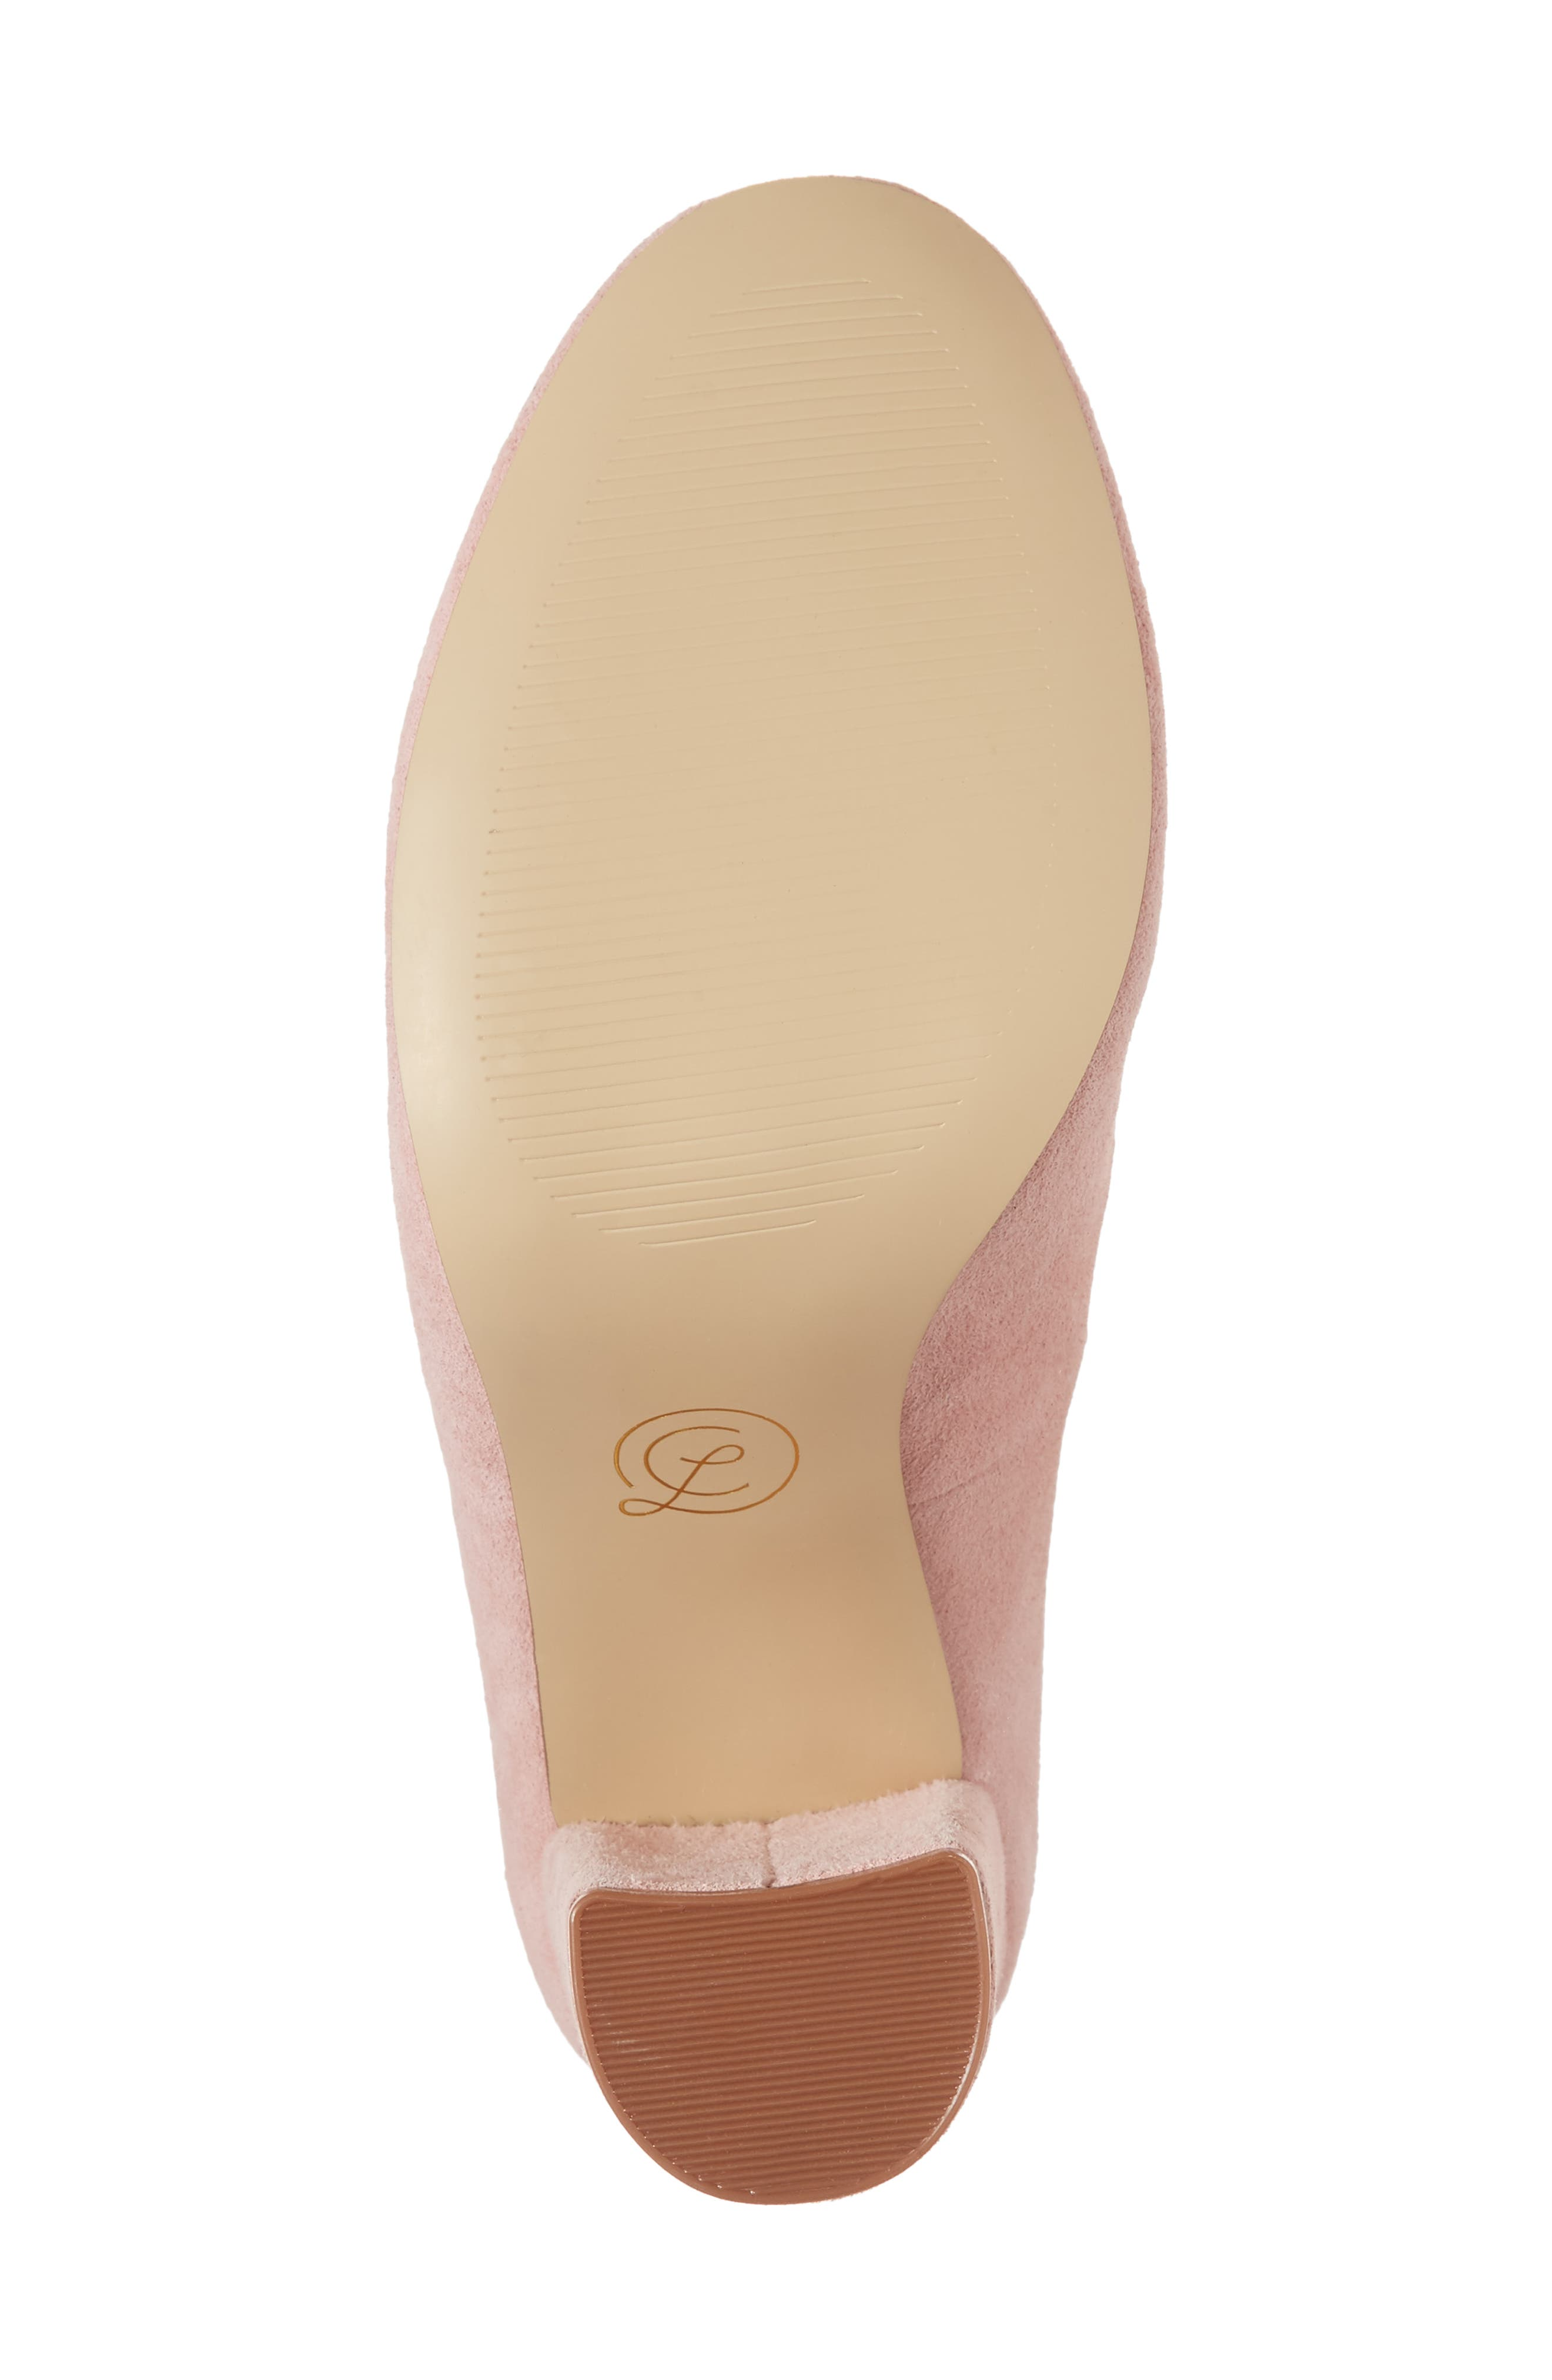 Veronika Pump,                             Alternate thumbnail 6, color,                             Rose Suede